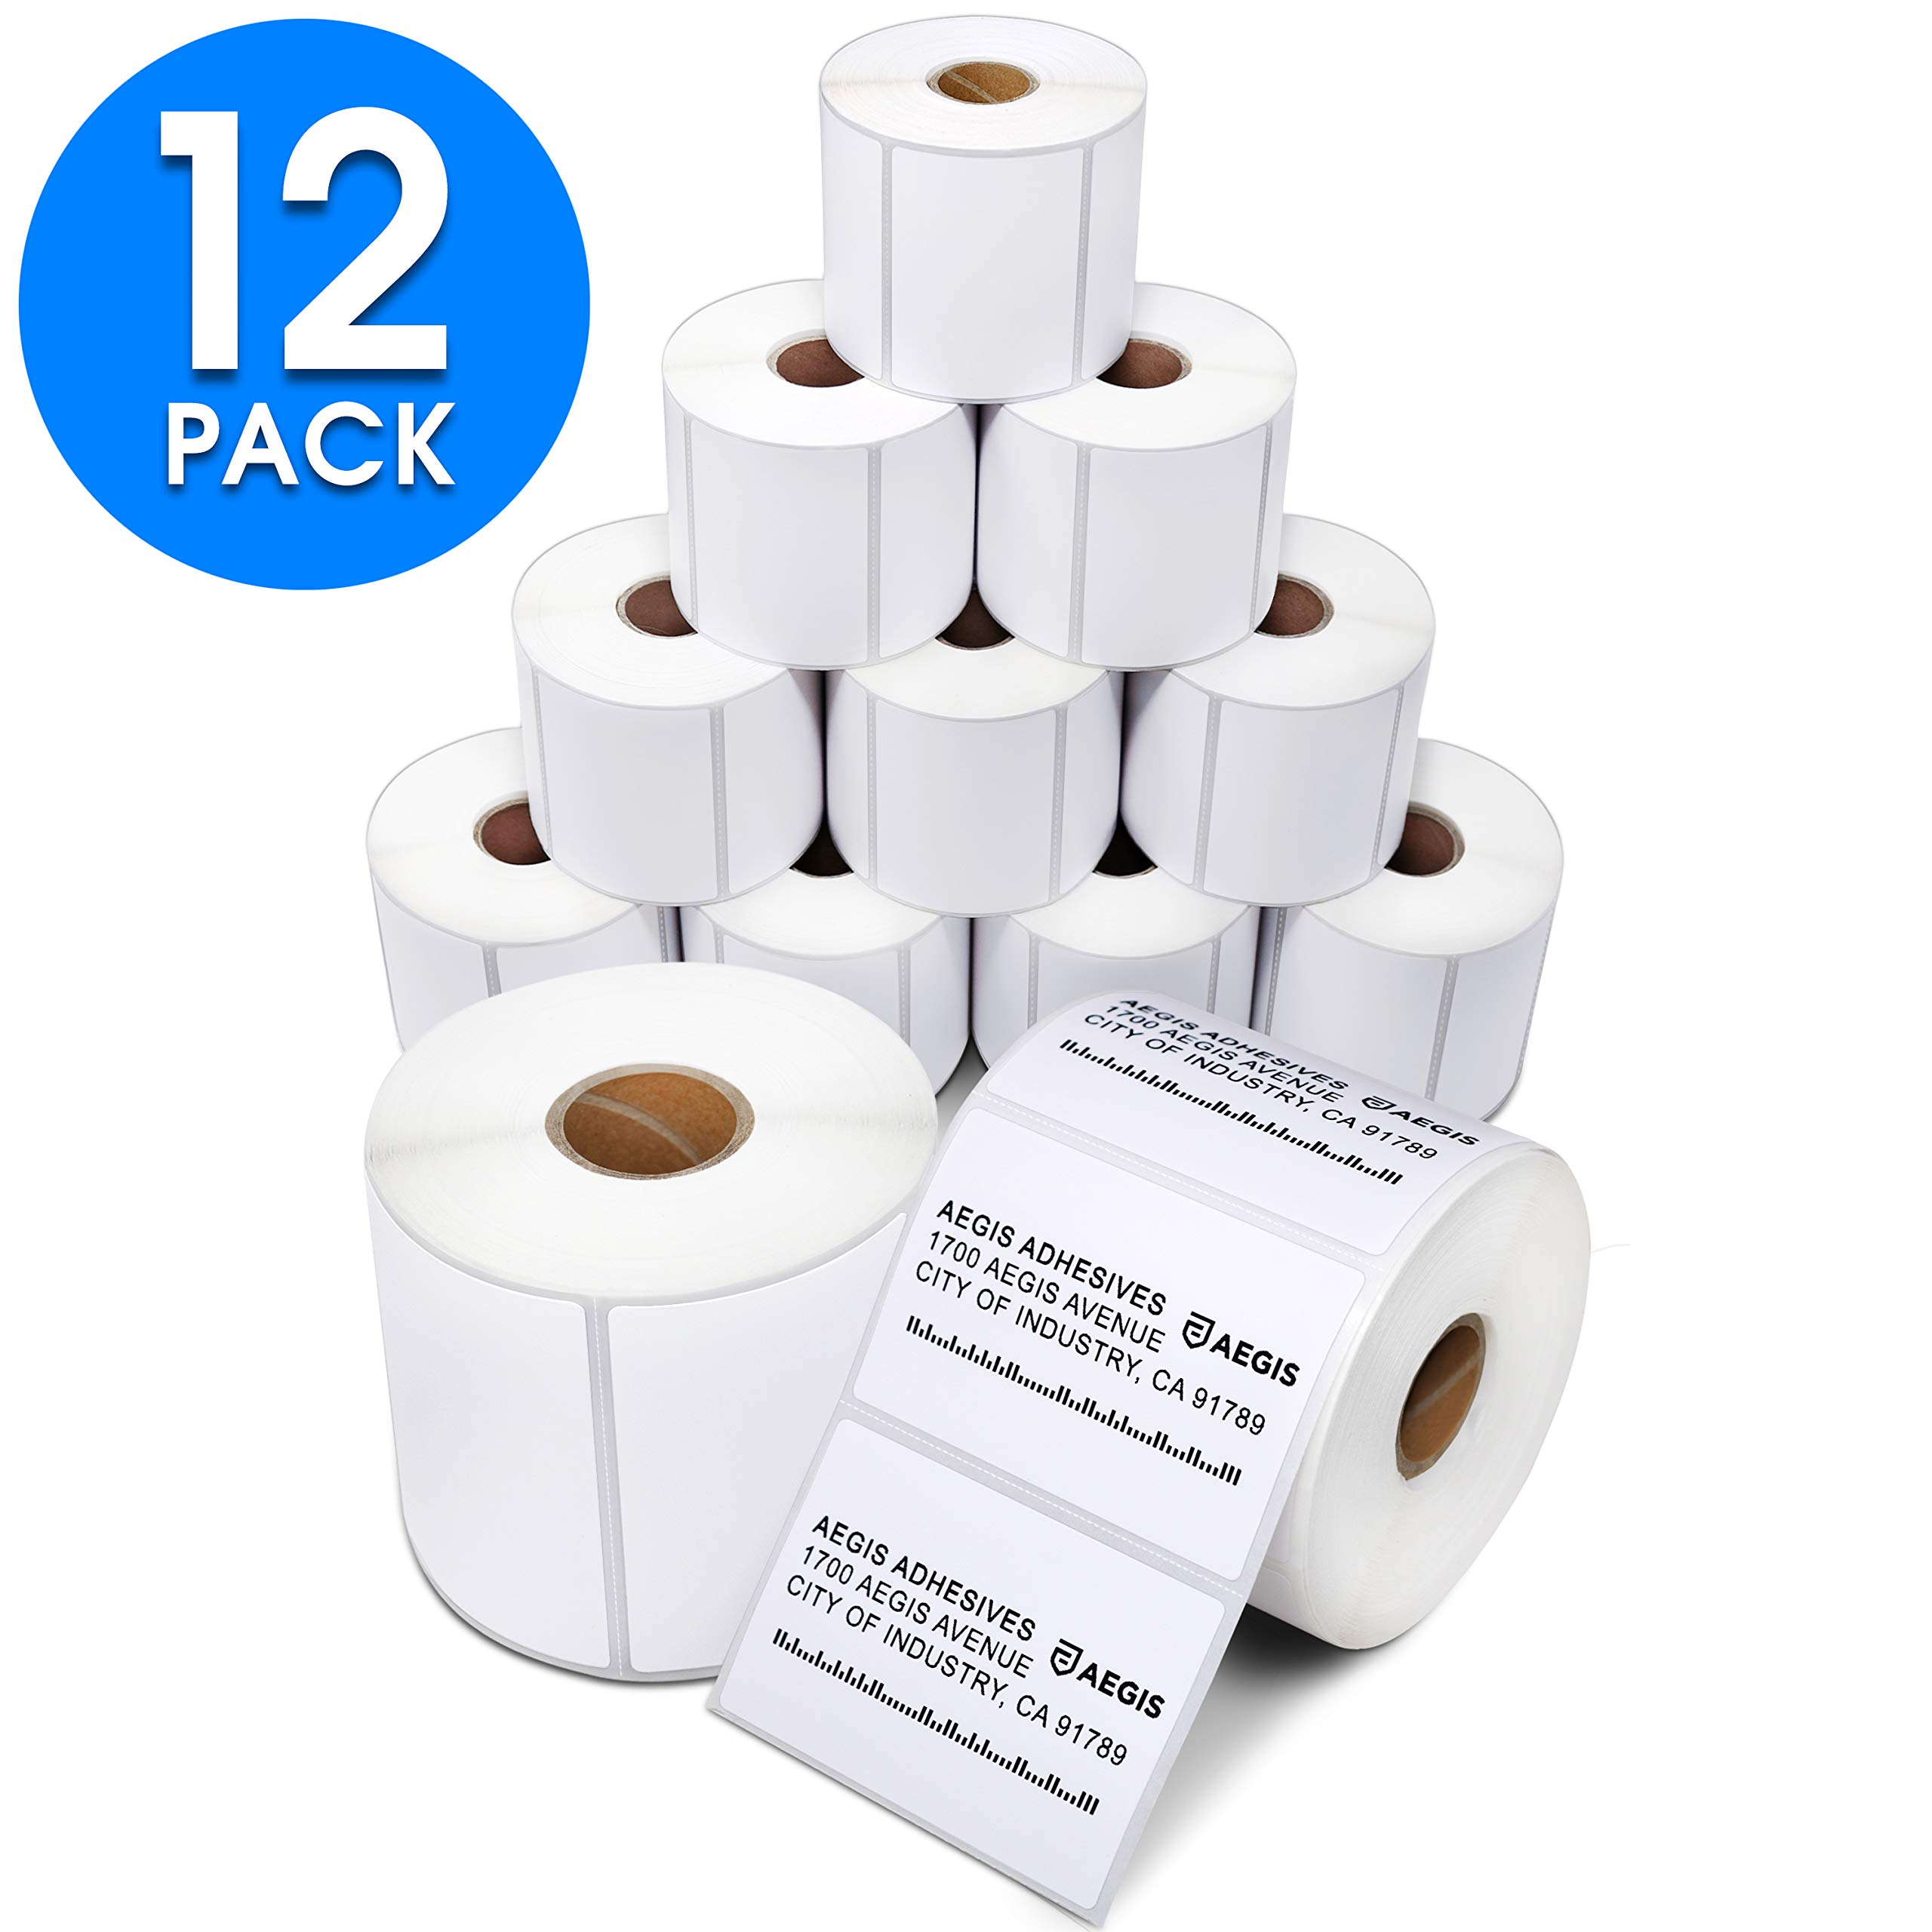 Aegis Adhesives - 3'' X 2'' Direct Thermal Labels for Shipping, Postage, Perforated & Compatible with Rollo Label Printer & Zebra Desktop Printers (12 Rolls, 700/Roll) by Aegis Adhesives